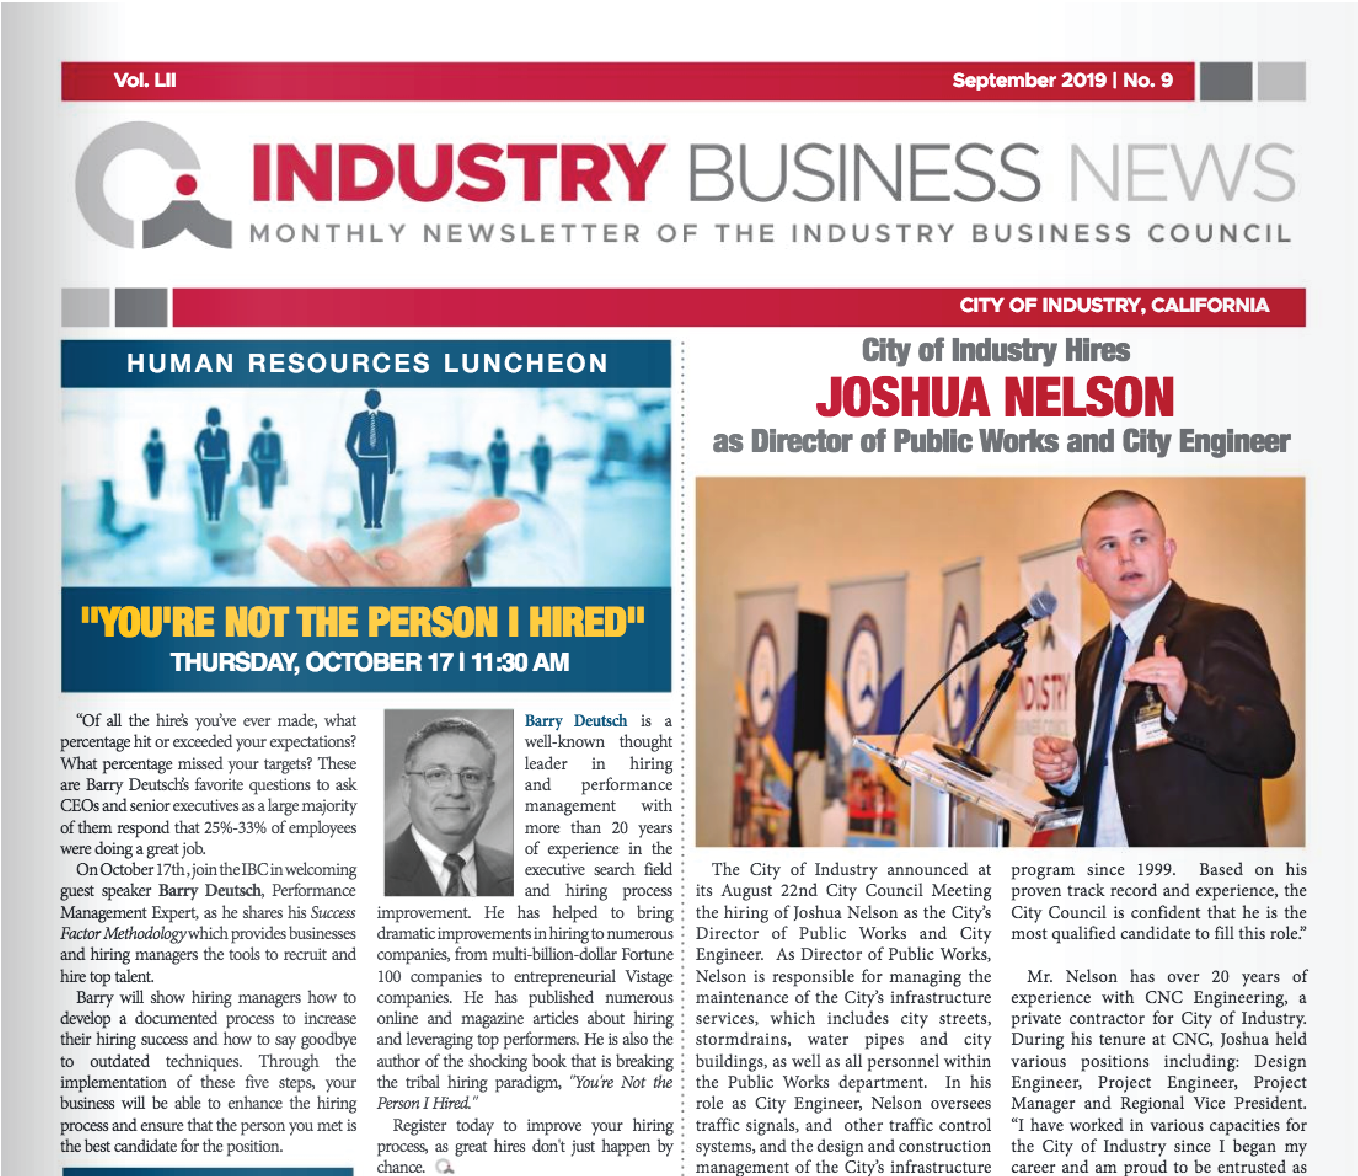 NEWSLETTER | 2019 September Industry Business News